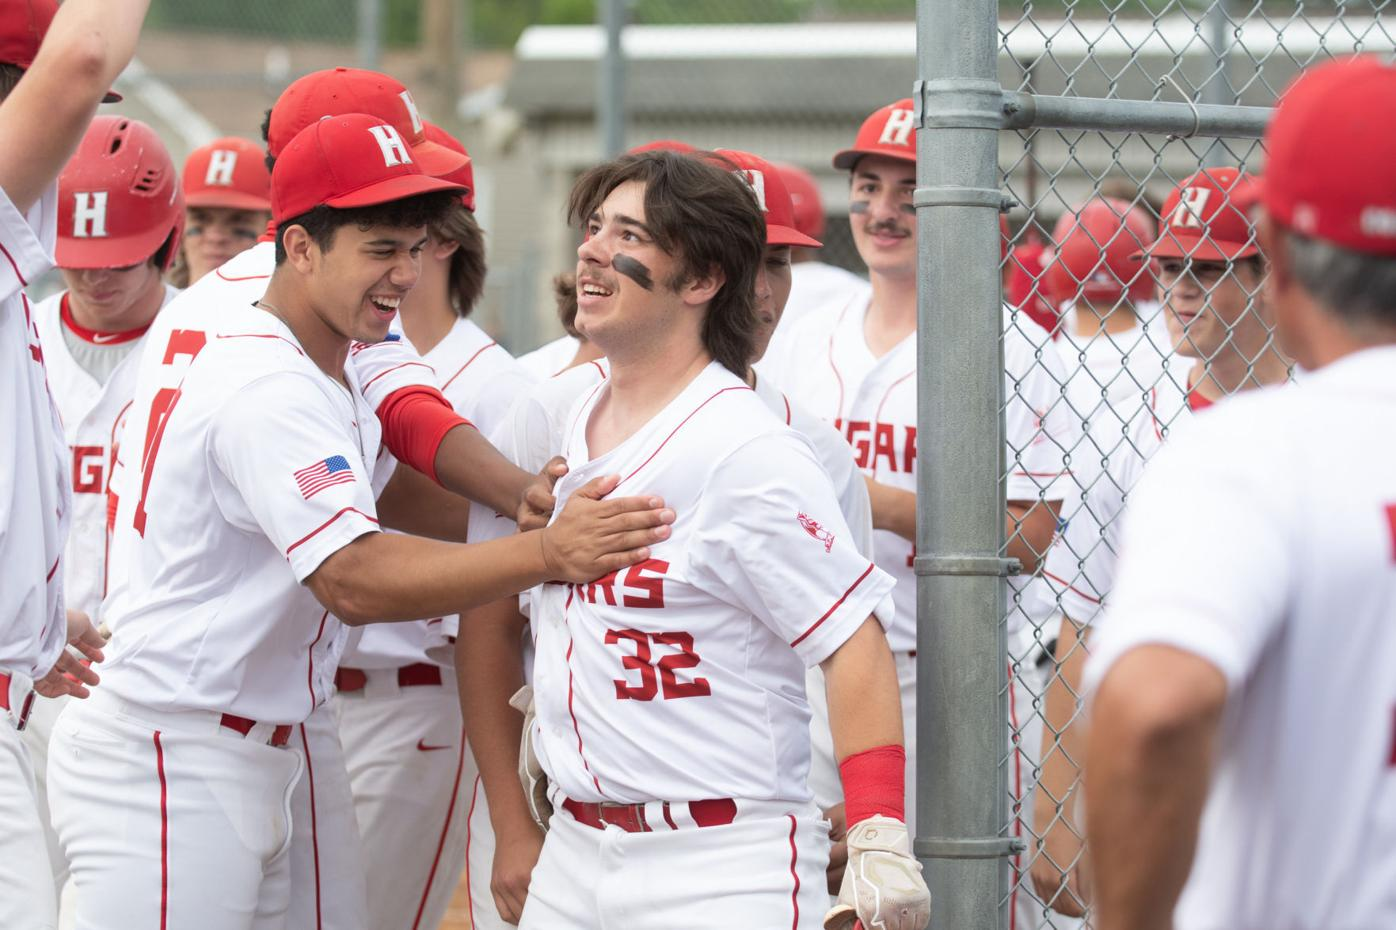 DISTRICT 2 BASEBALL: Unbeaten Cougars cruise to second straight subregional title